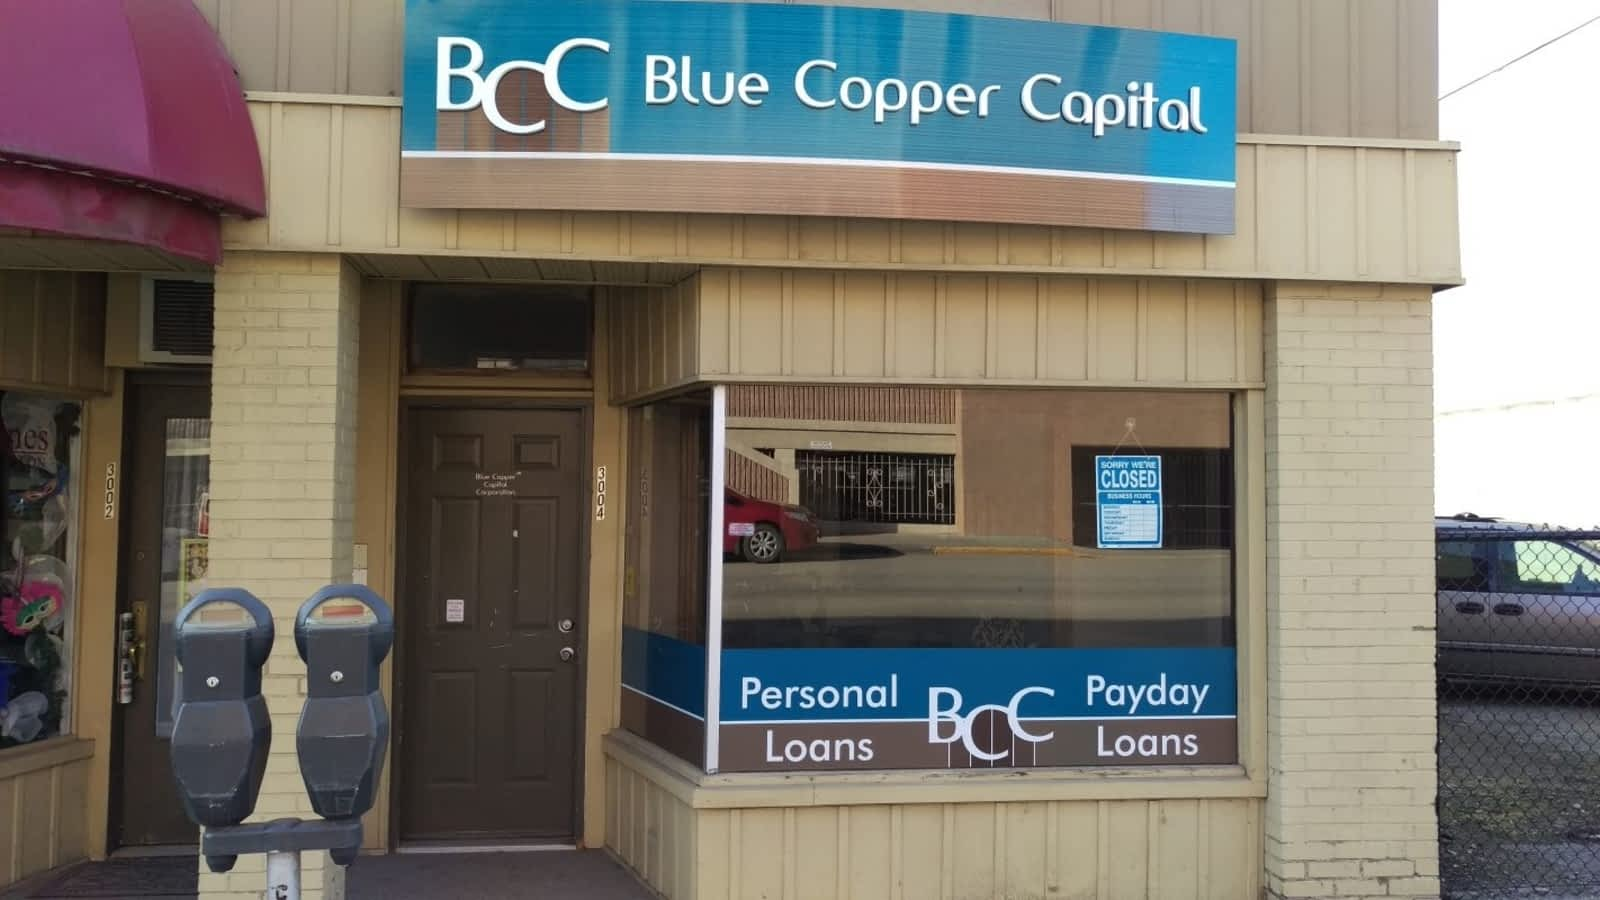 Payday loan in abbotsford bc image 5